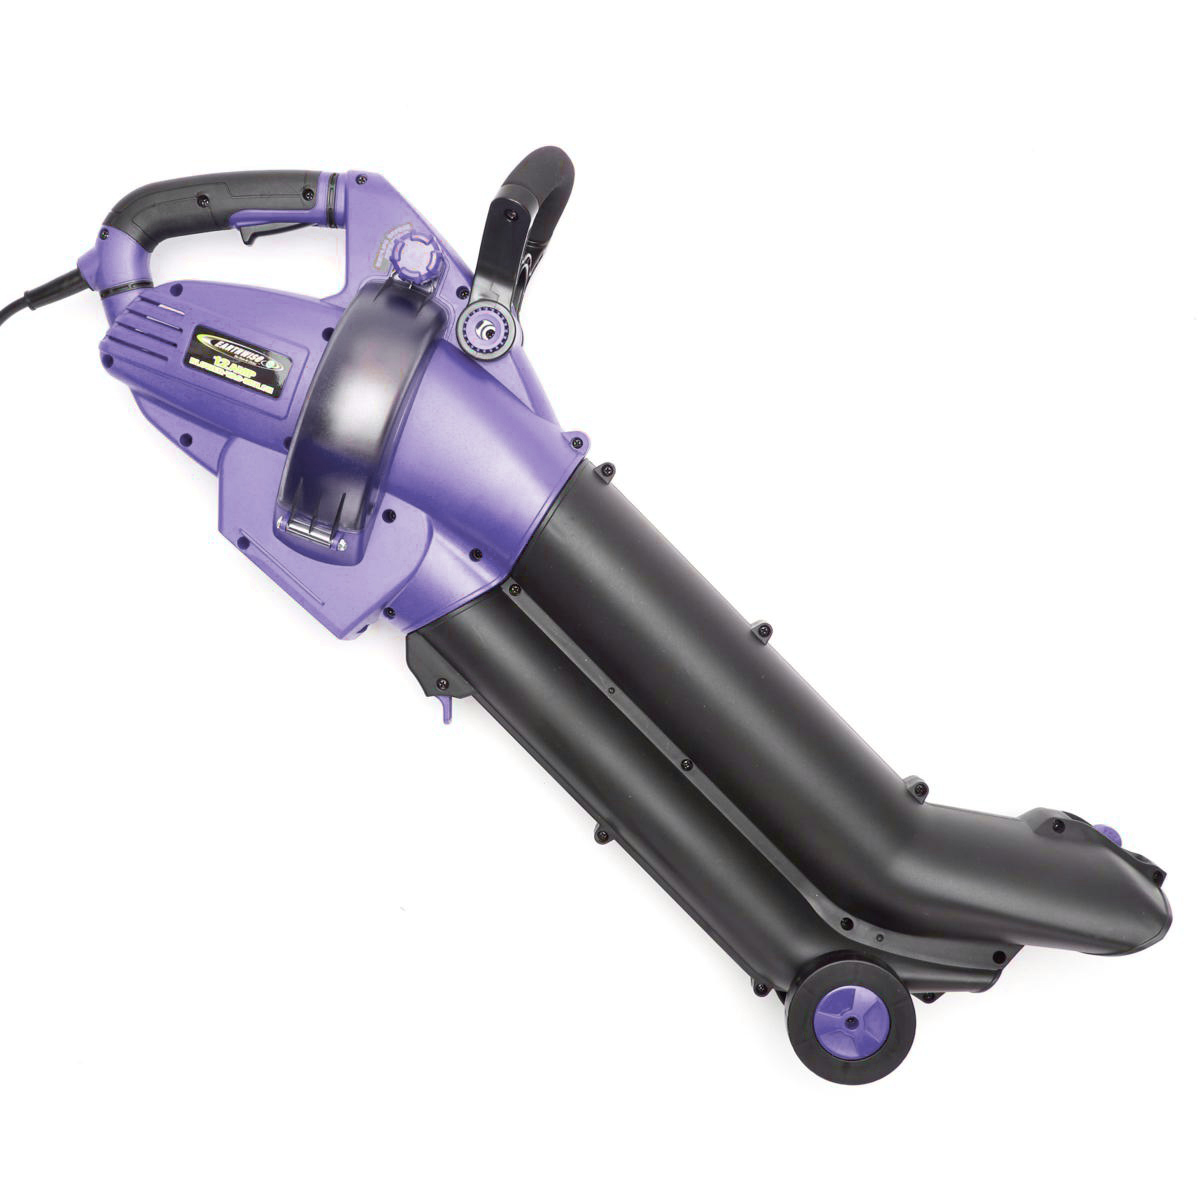 Vacuum and Mulcher EARTHWISE 12-Amp Corded 3-in-1 Wheeled Blower